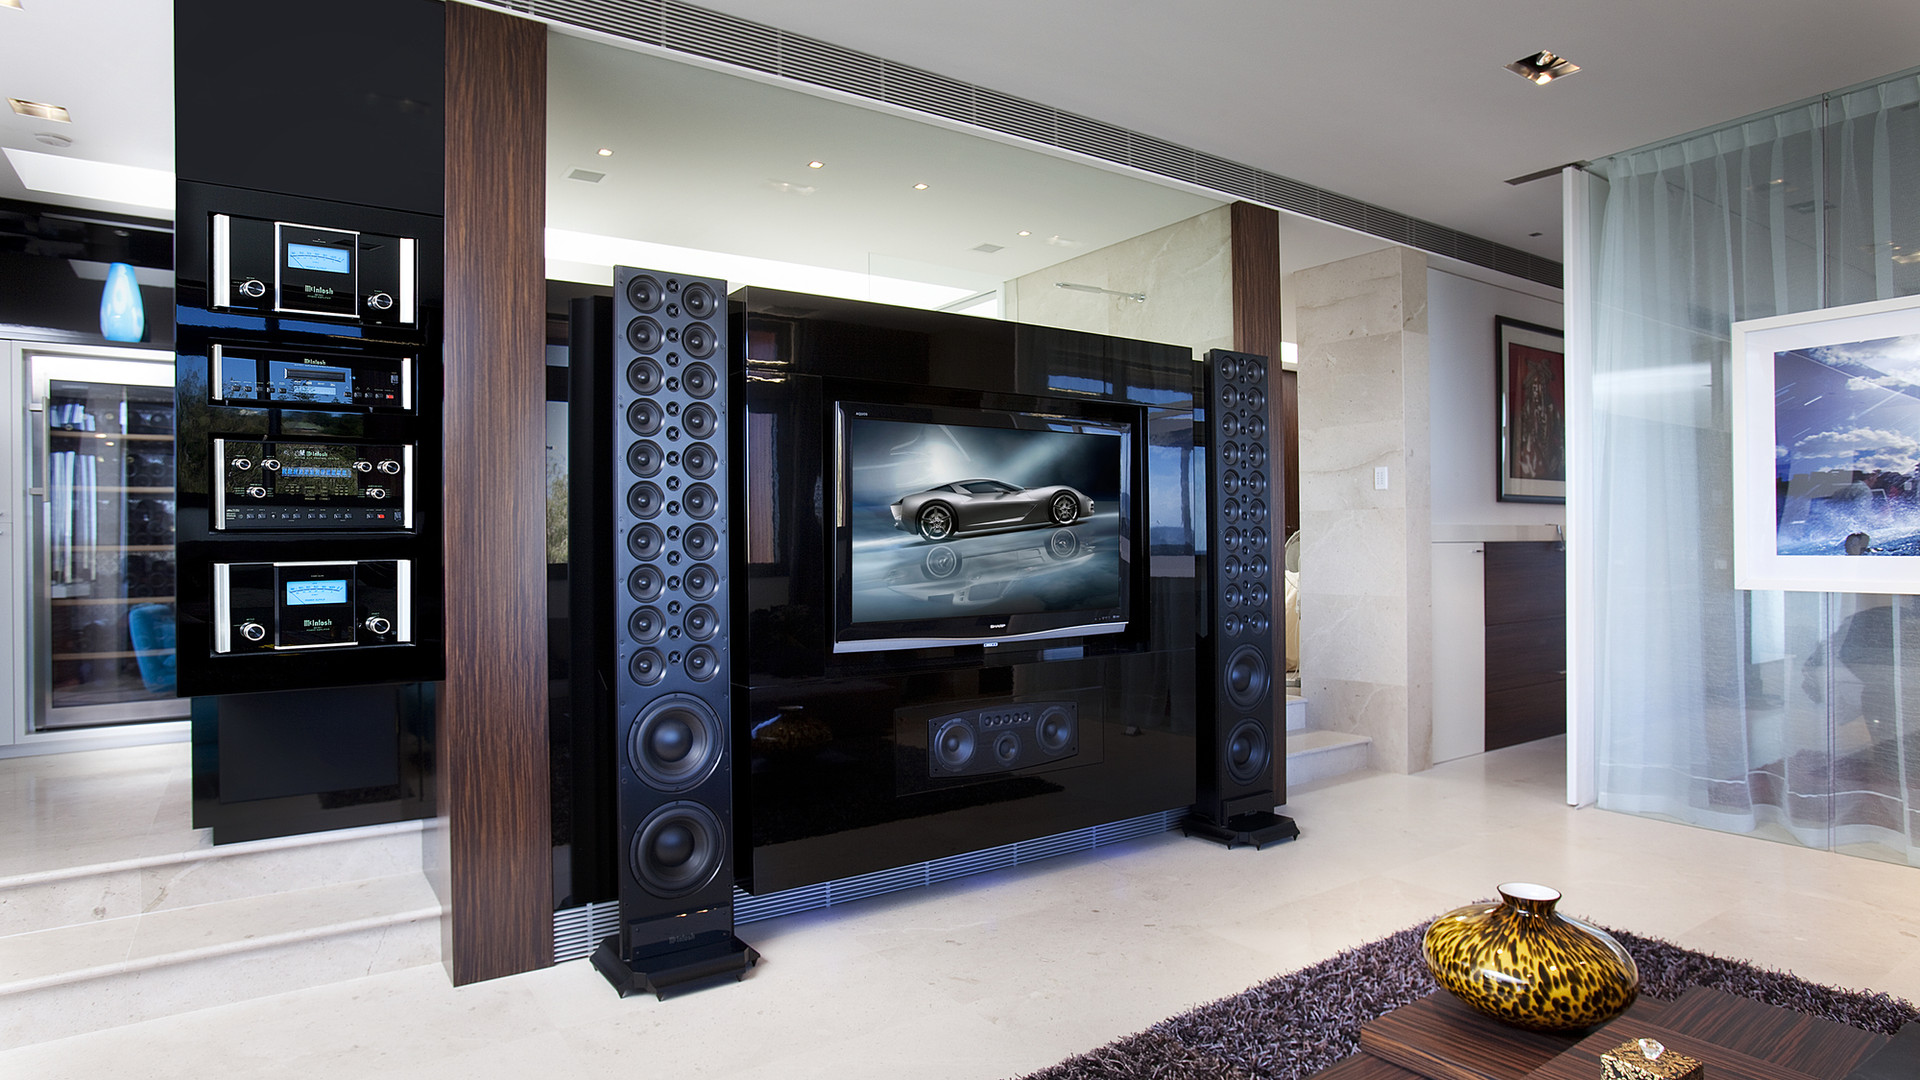 Big sound with big speakers and LED display panel with lighting control and security using a single app for control